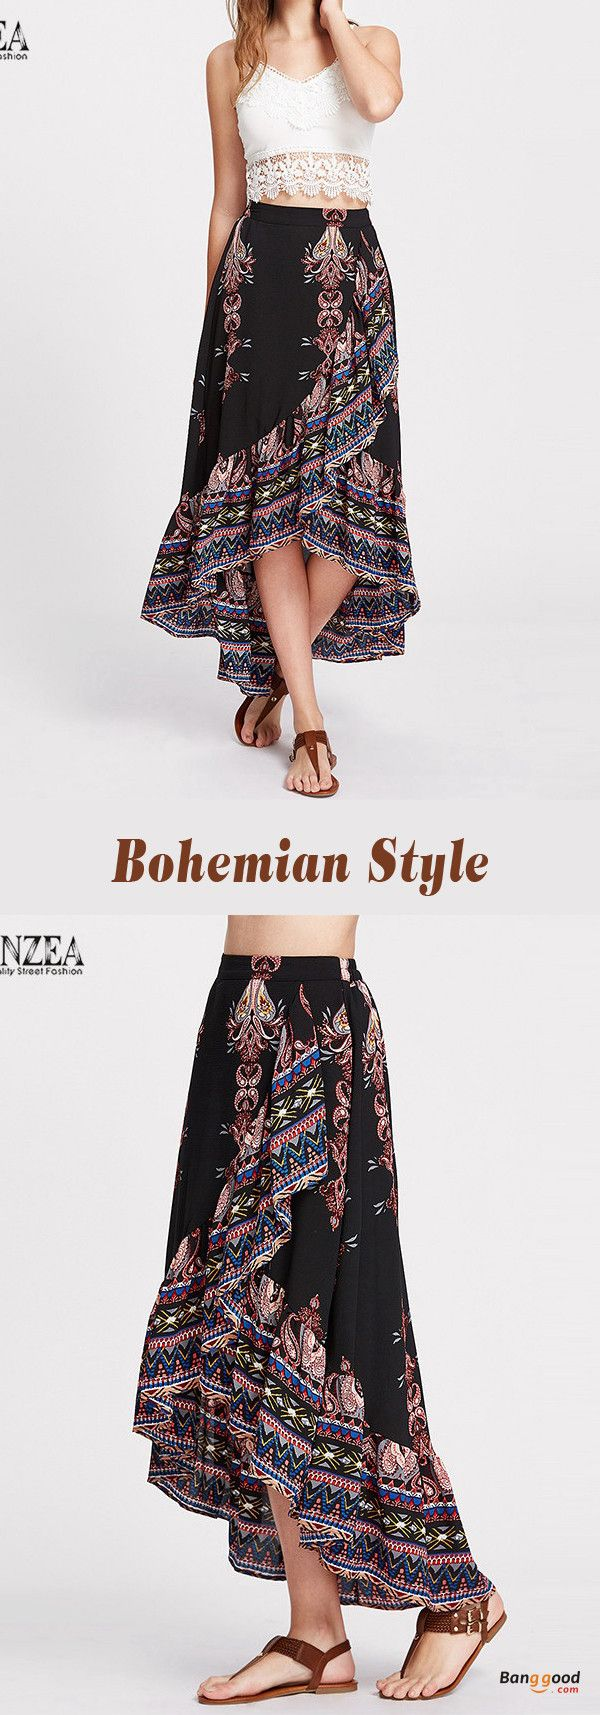 US$24.39+Free shipping. Size: M~5XL. Home or out, love this vintage and bohemian summer skirt. Women's Skirt, Long Skirt, Dresses Casual, Skirt for Teens, Summer Dresses, Summer Outfits, Retro Fashion, Skirt Outfit.